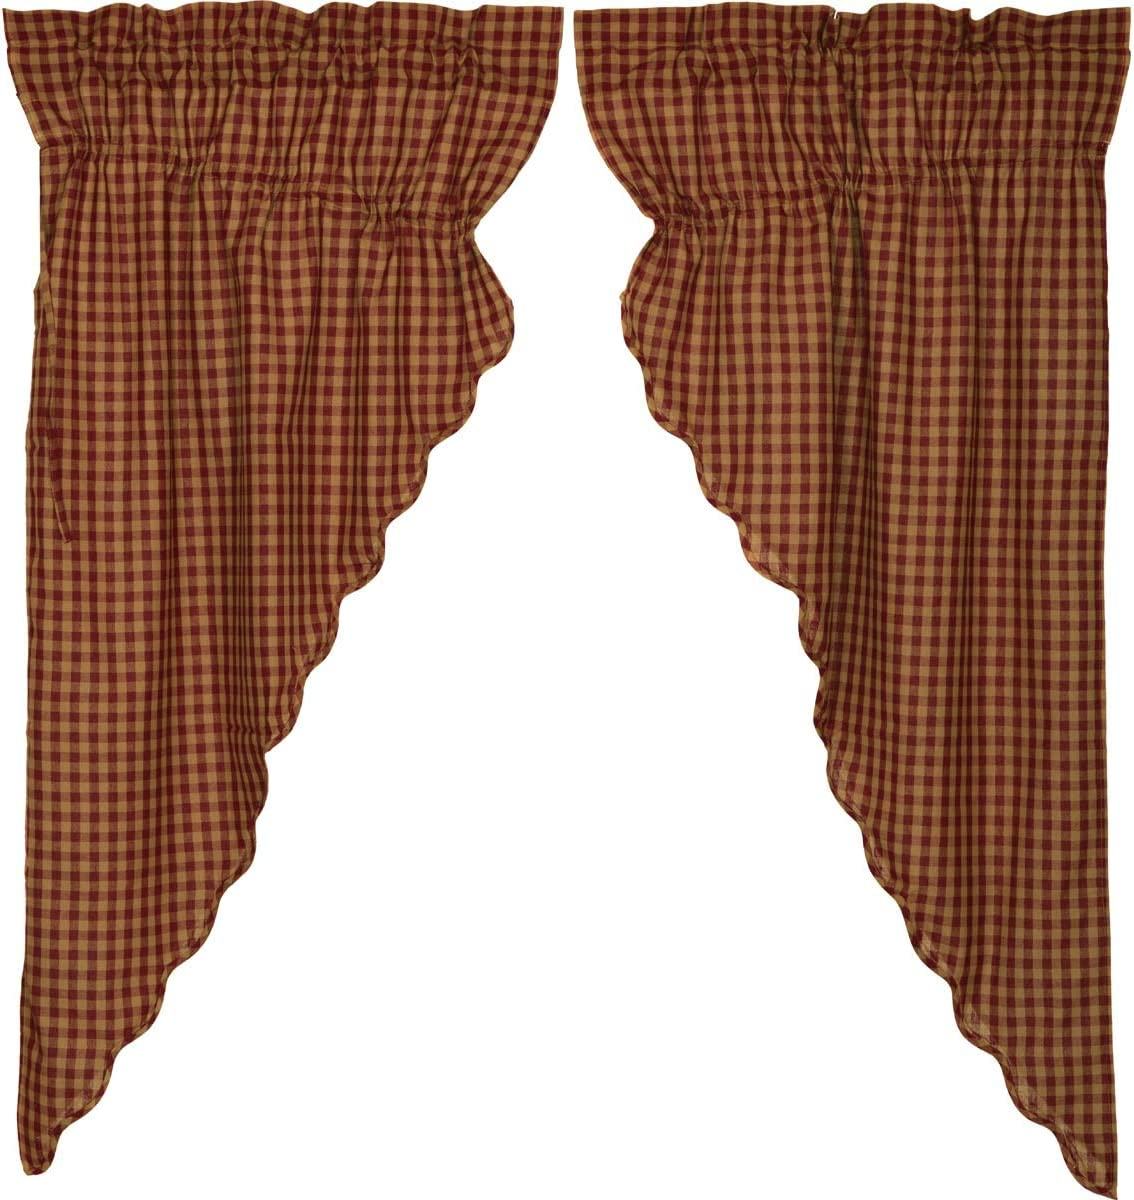 VHC Brands Burgundy Check Scalloped Prairie Short Panel Window Country Set of 2 for Living Dining Room Curtain, Set 63x36x18, Red